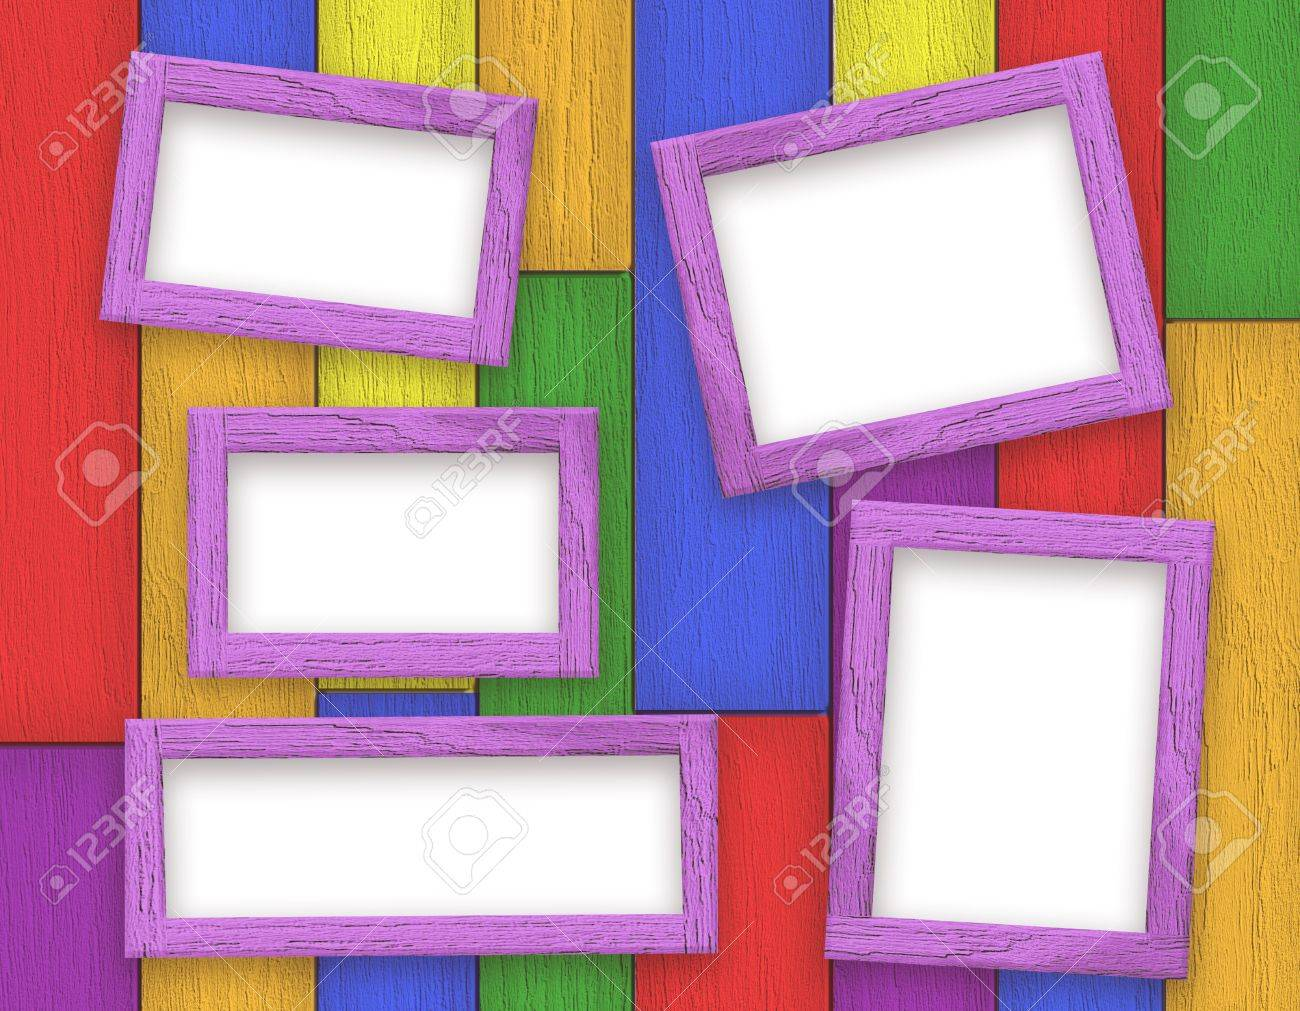 Wooden Picture Frames Color Set On Colorful Wooden Rainbow ...